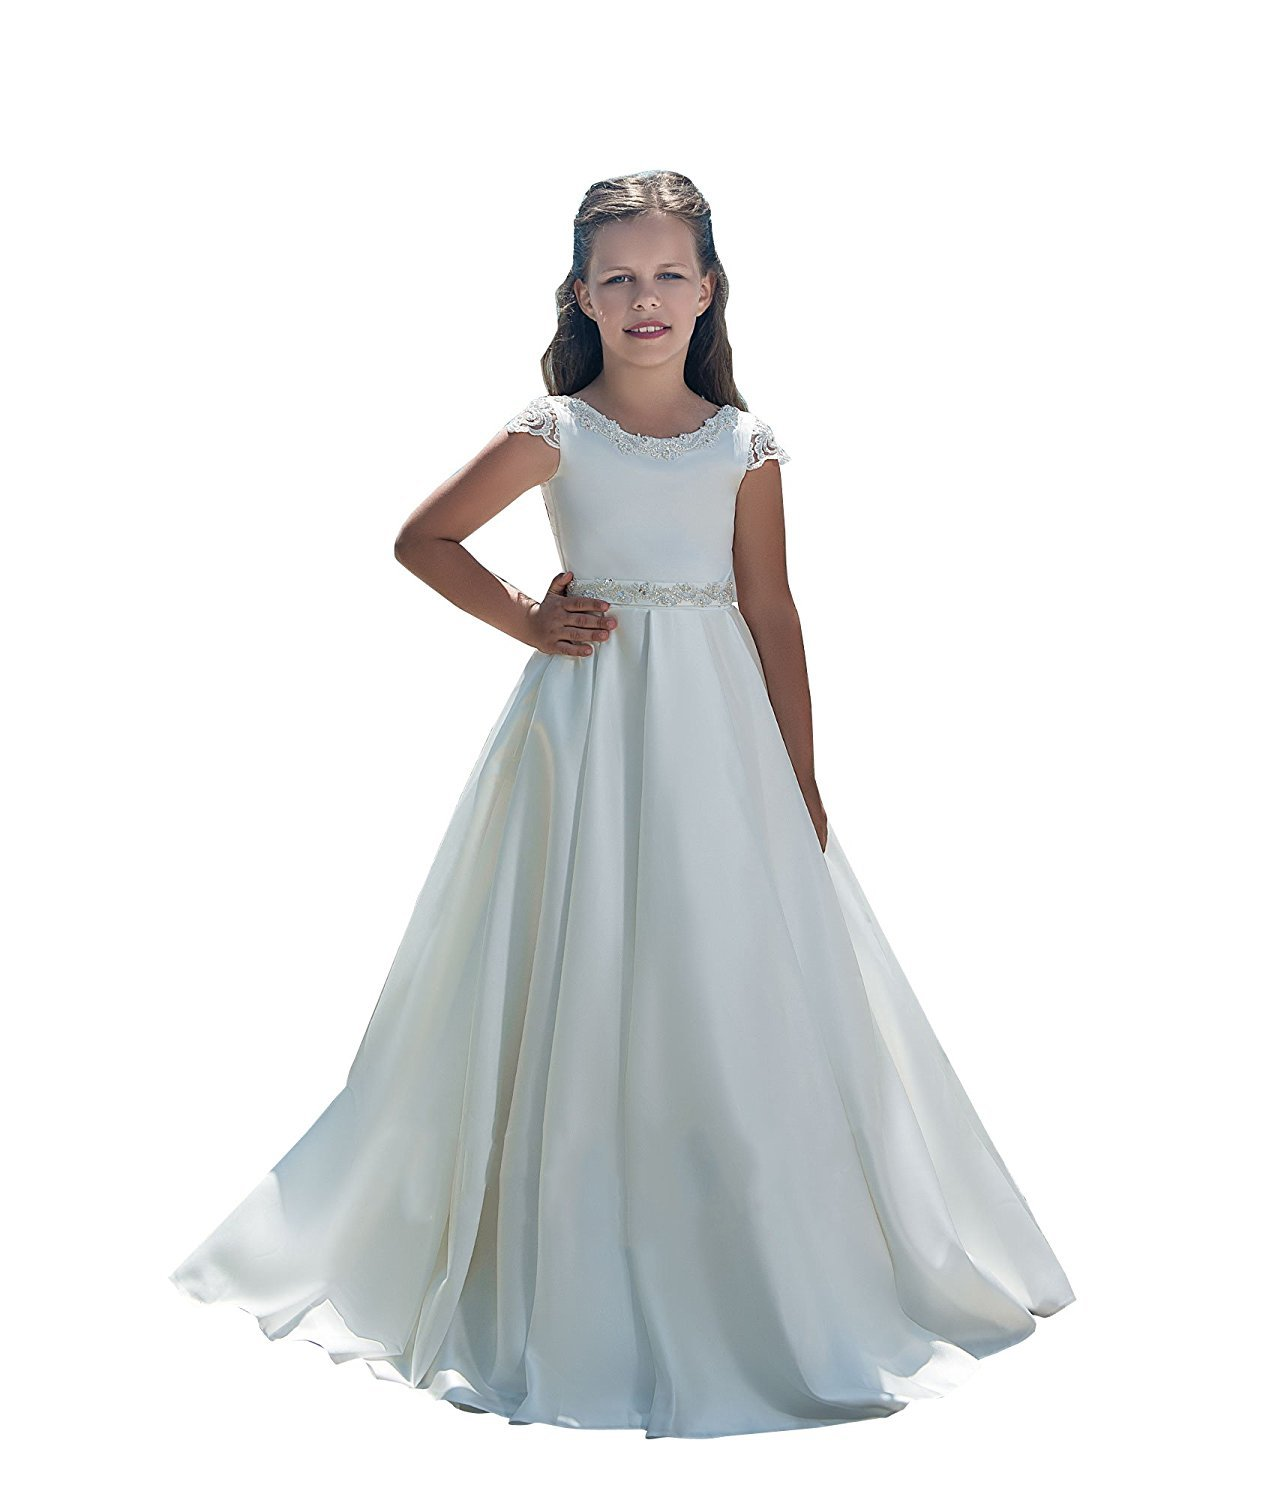 Banfvting Long Flower Girl Dresses With Bow Sashes Lace